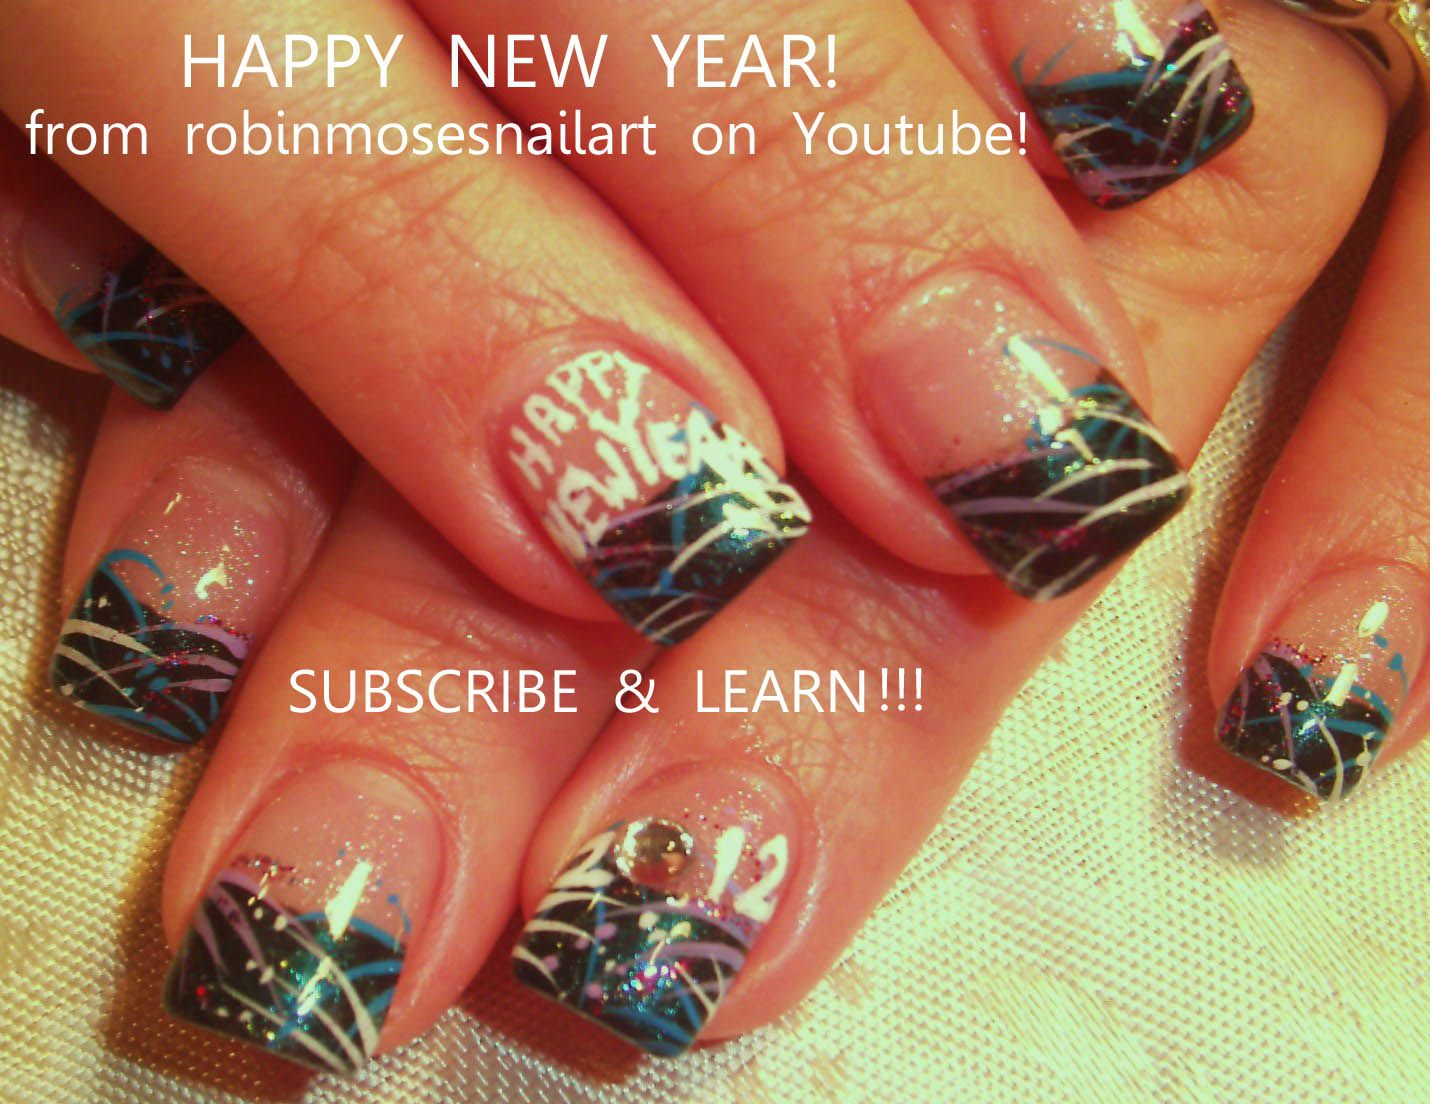 nail art designs for new years eve - Google Search | Nails ...